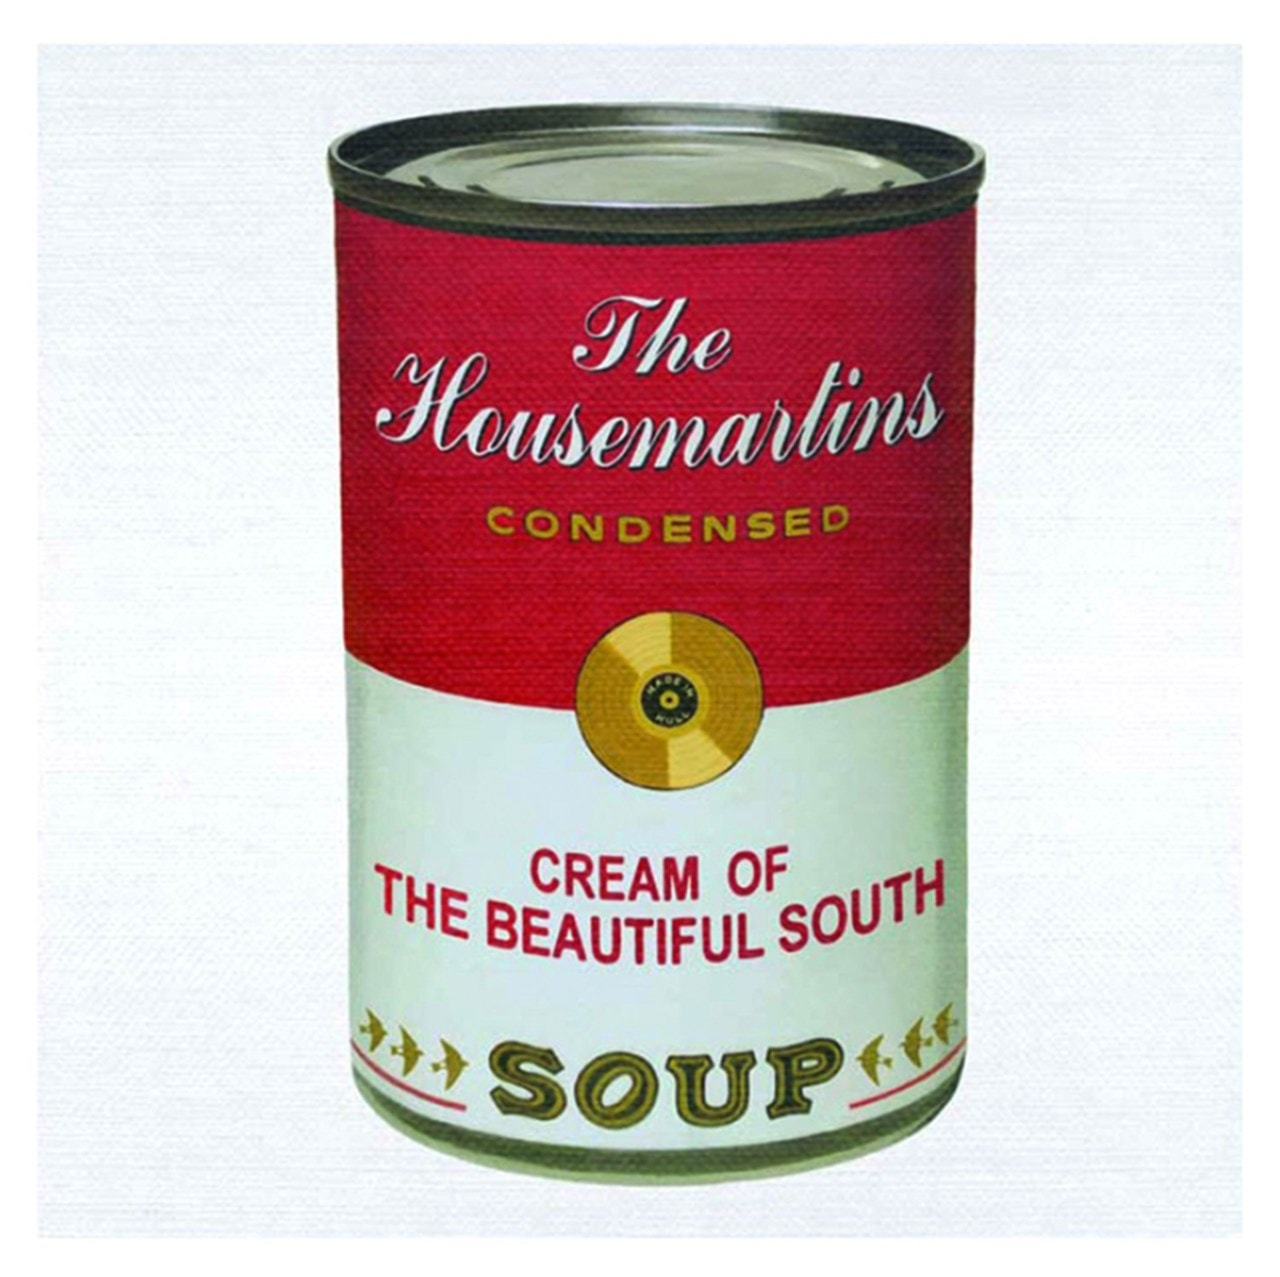 Soup: The Best of the Beautiful South & the Housemartins - 1